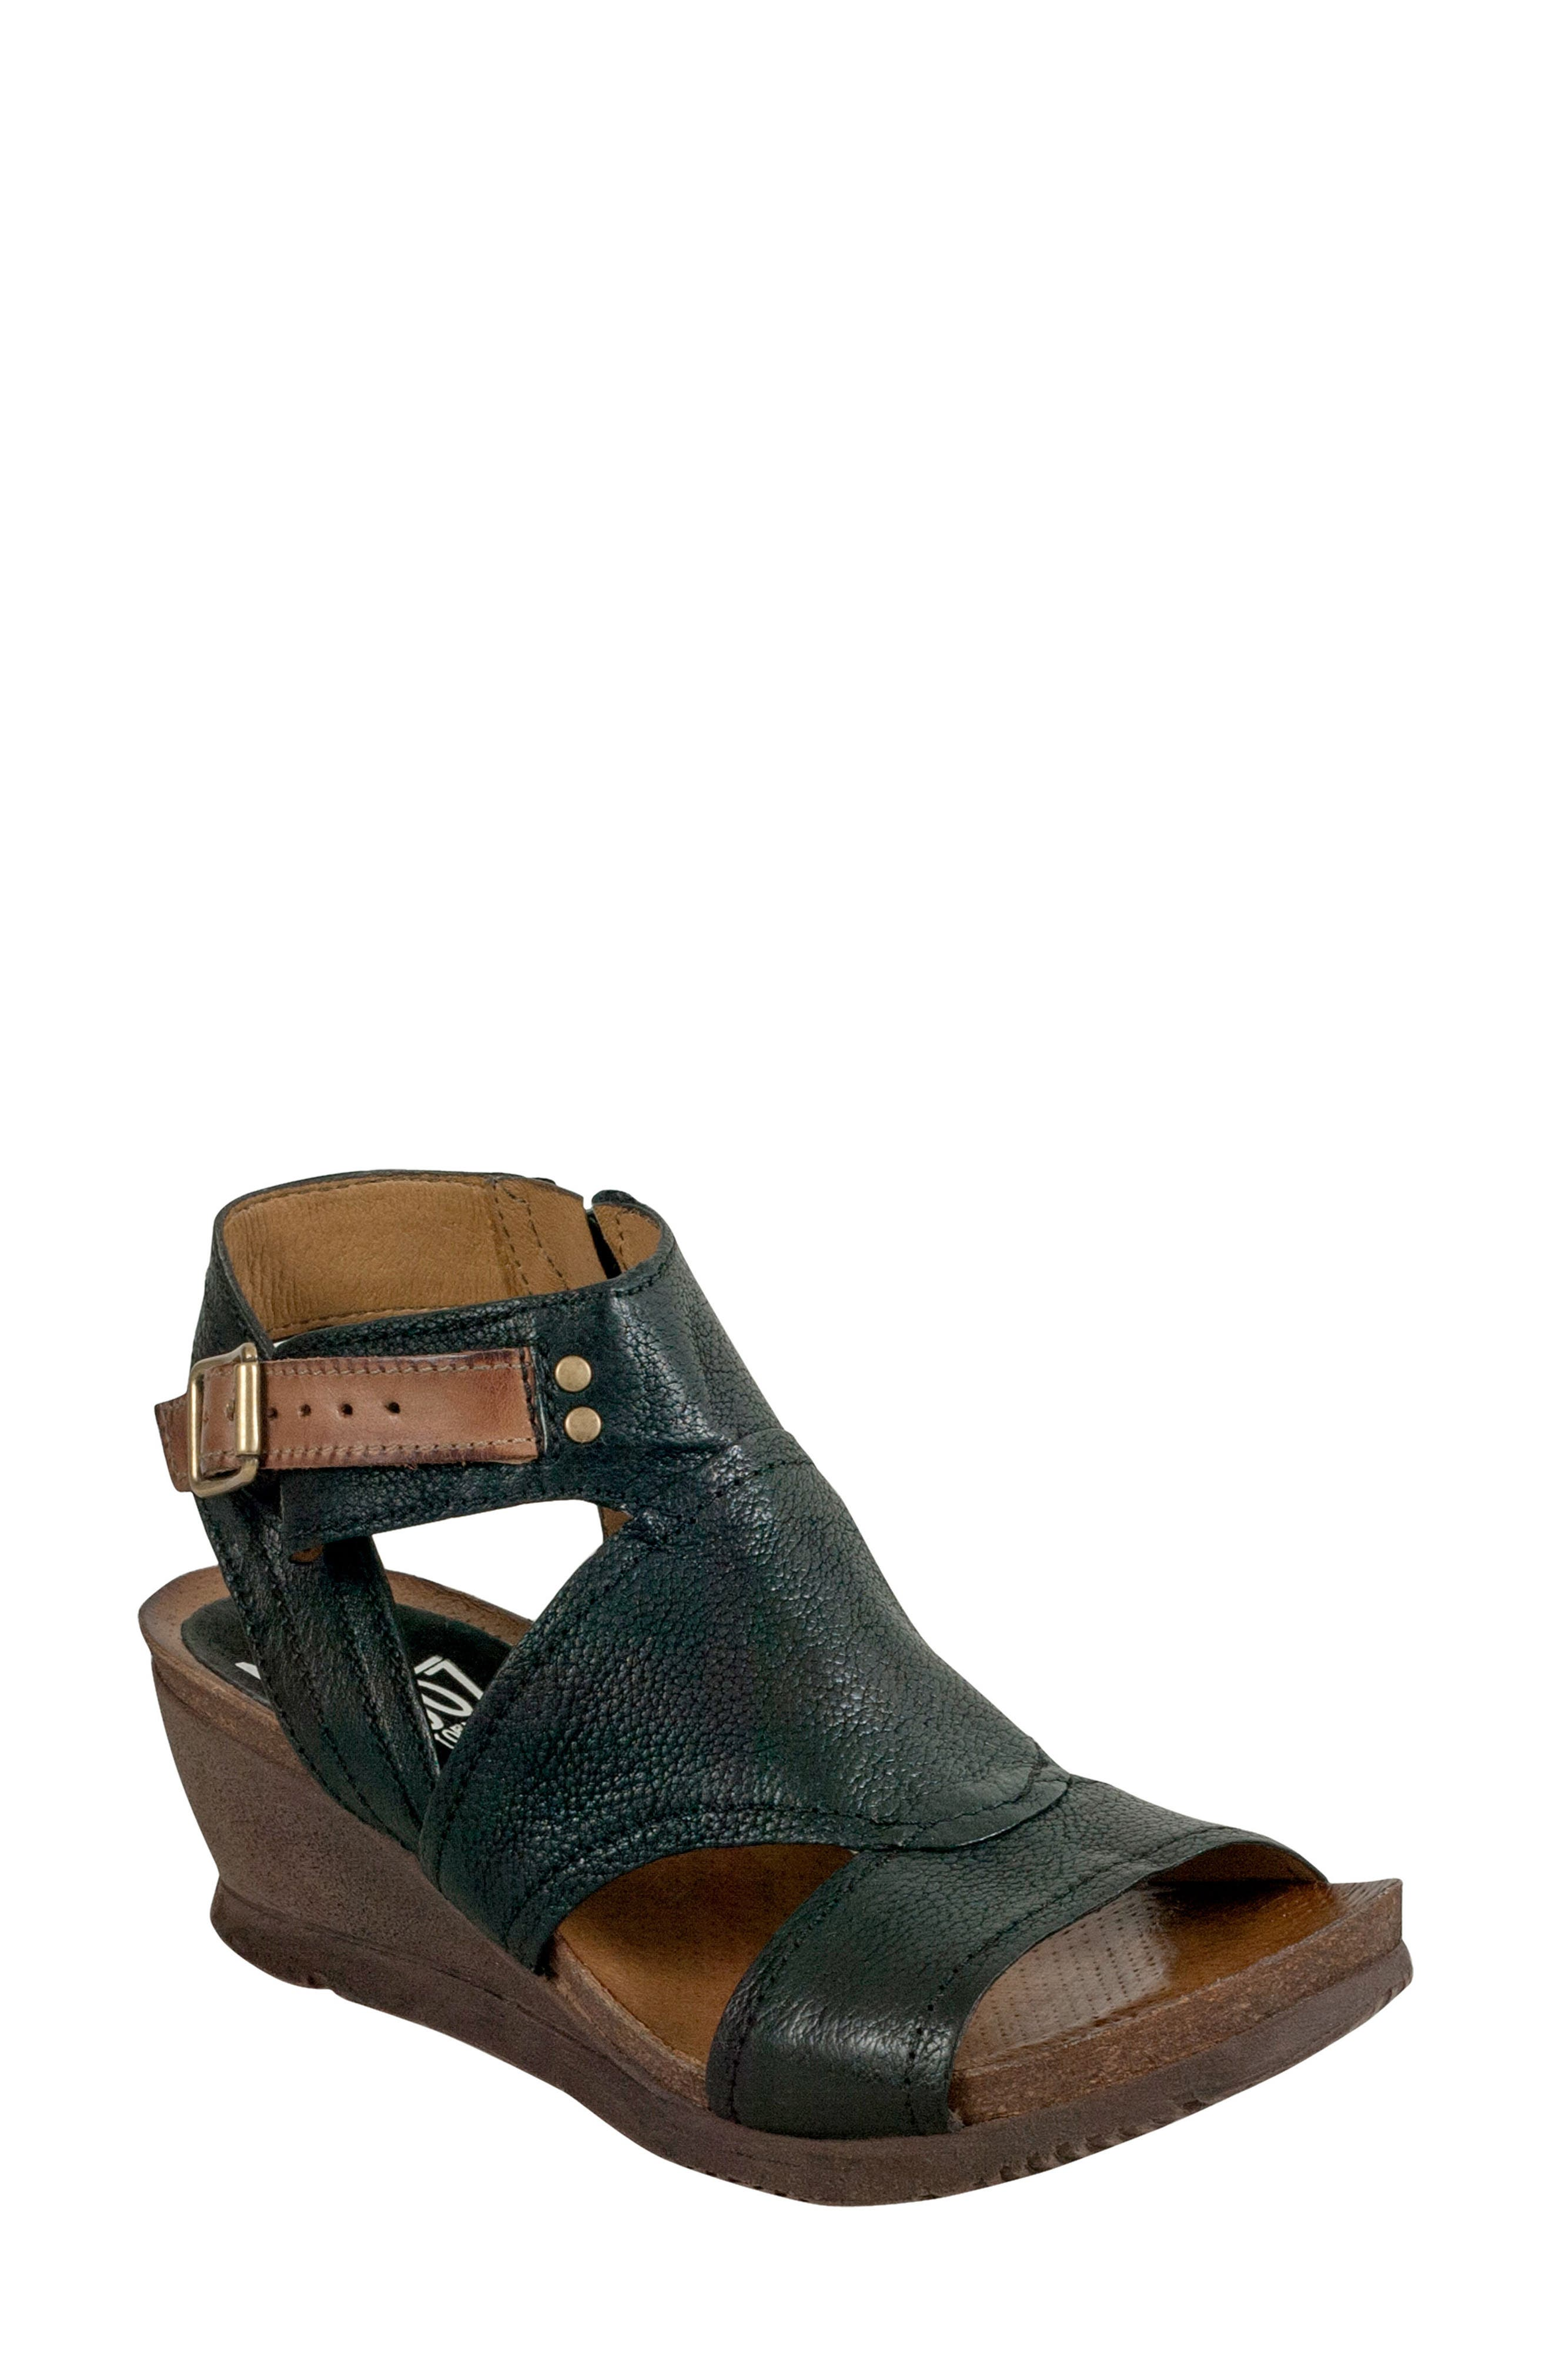 Scout Wedge Sandal,                         Main,                         color, 001